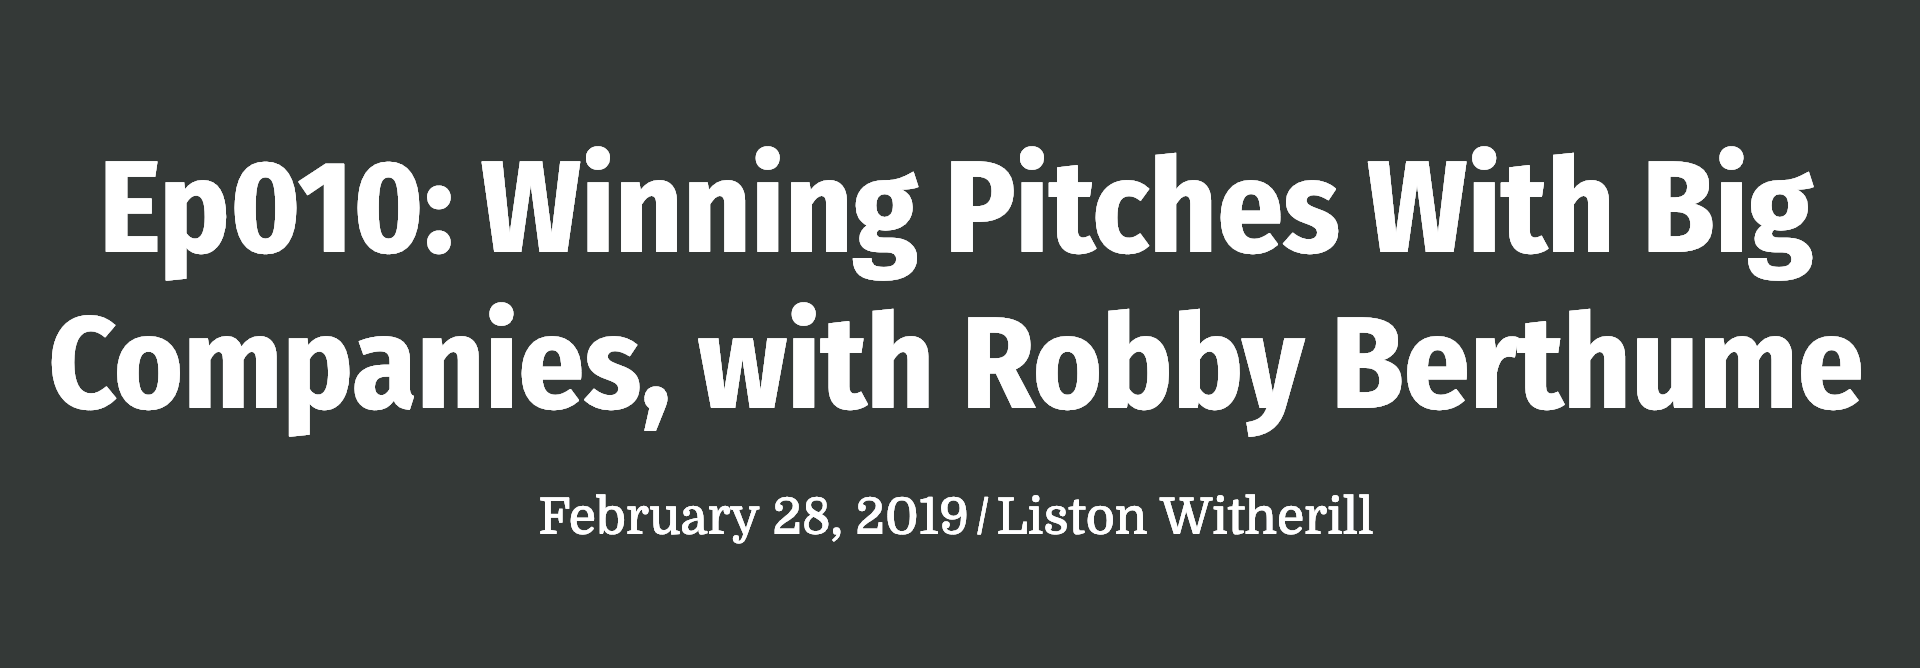 Ep010: Winning Pitches With Big Companies, with Robby Berthume